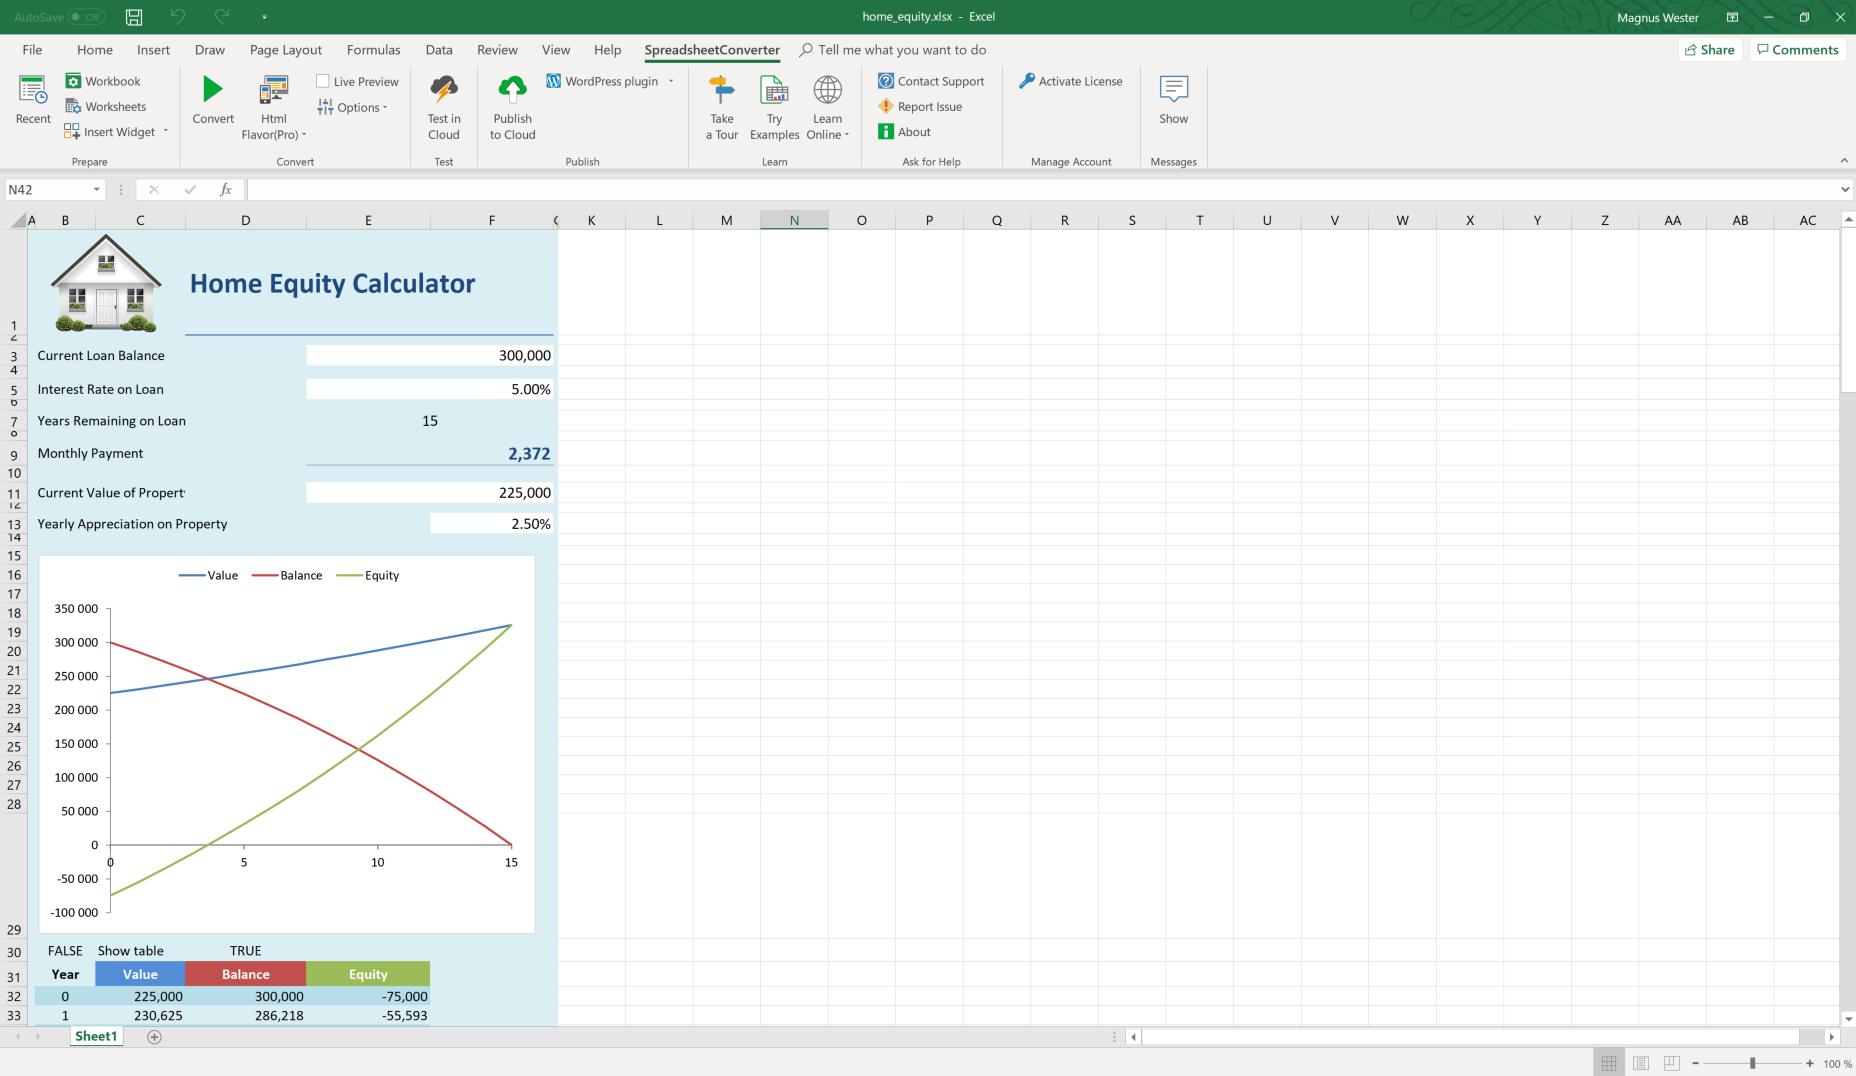 Screenshot of a Home Equity Calculator in Excel